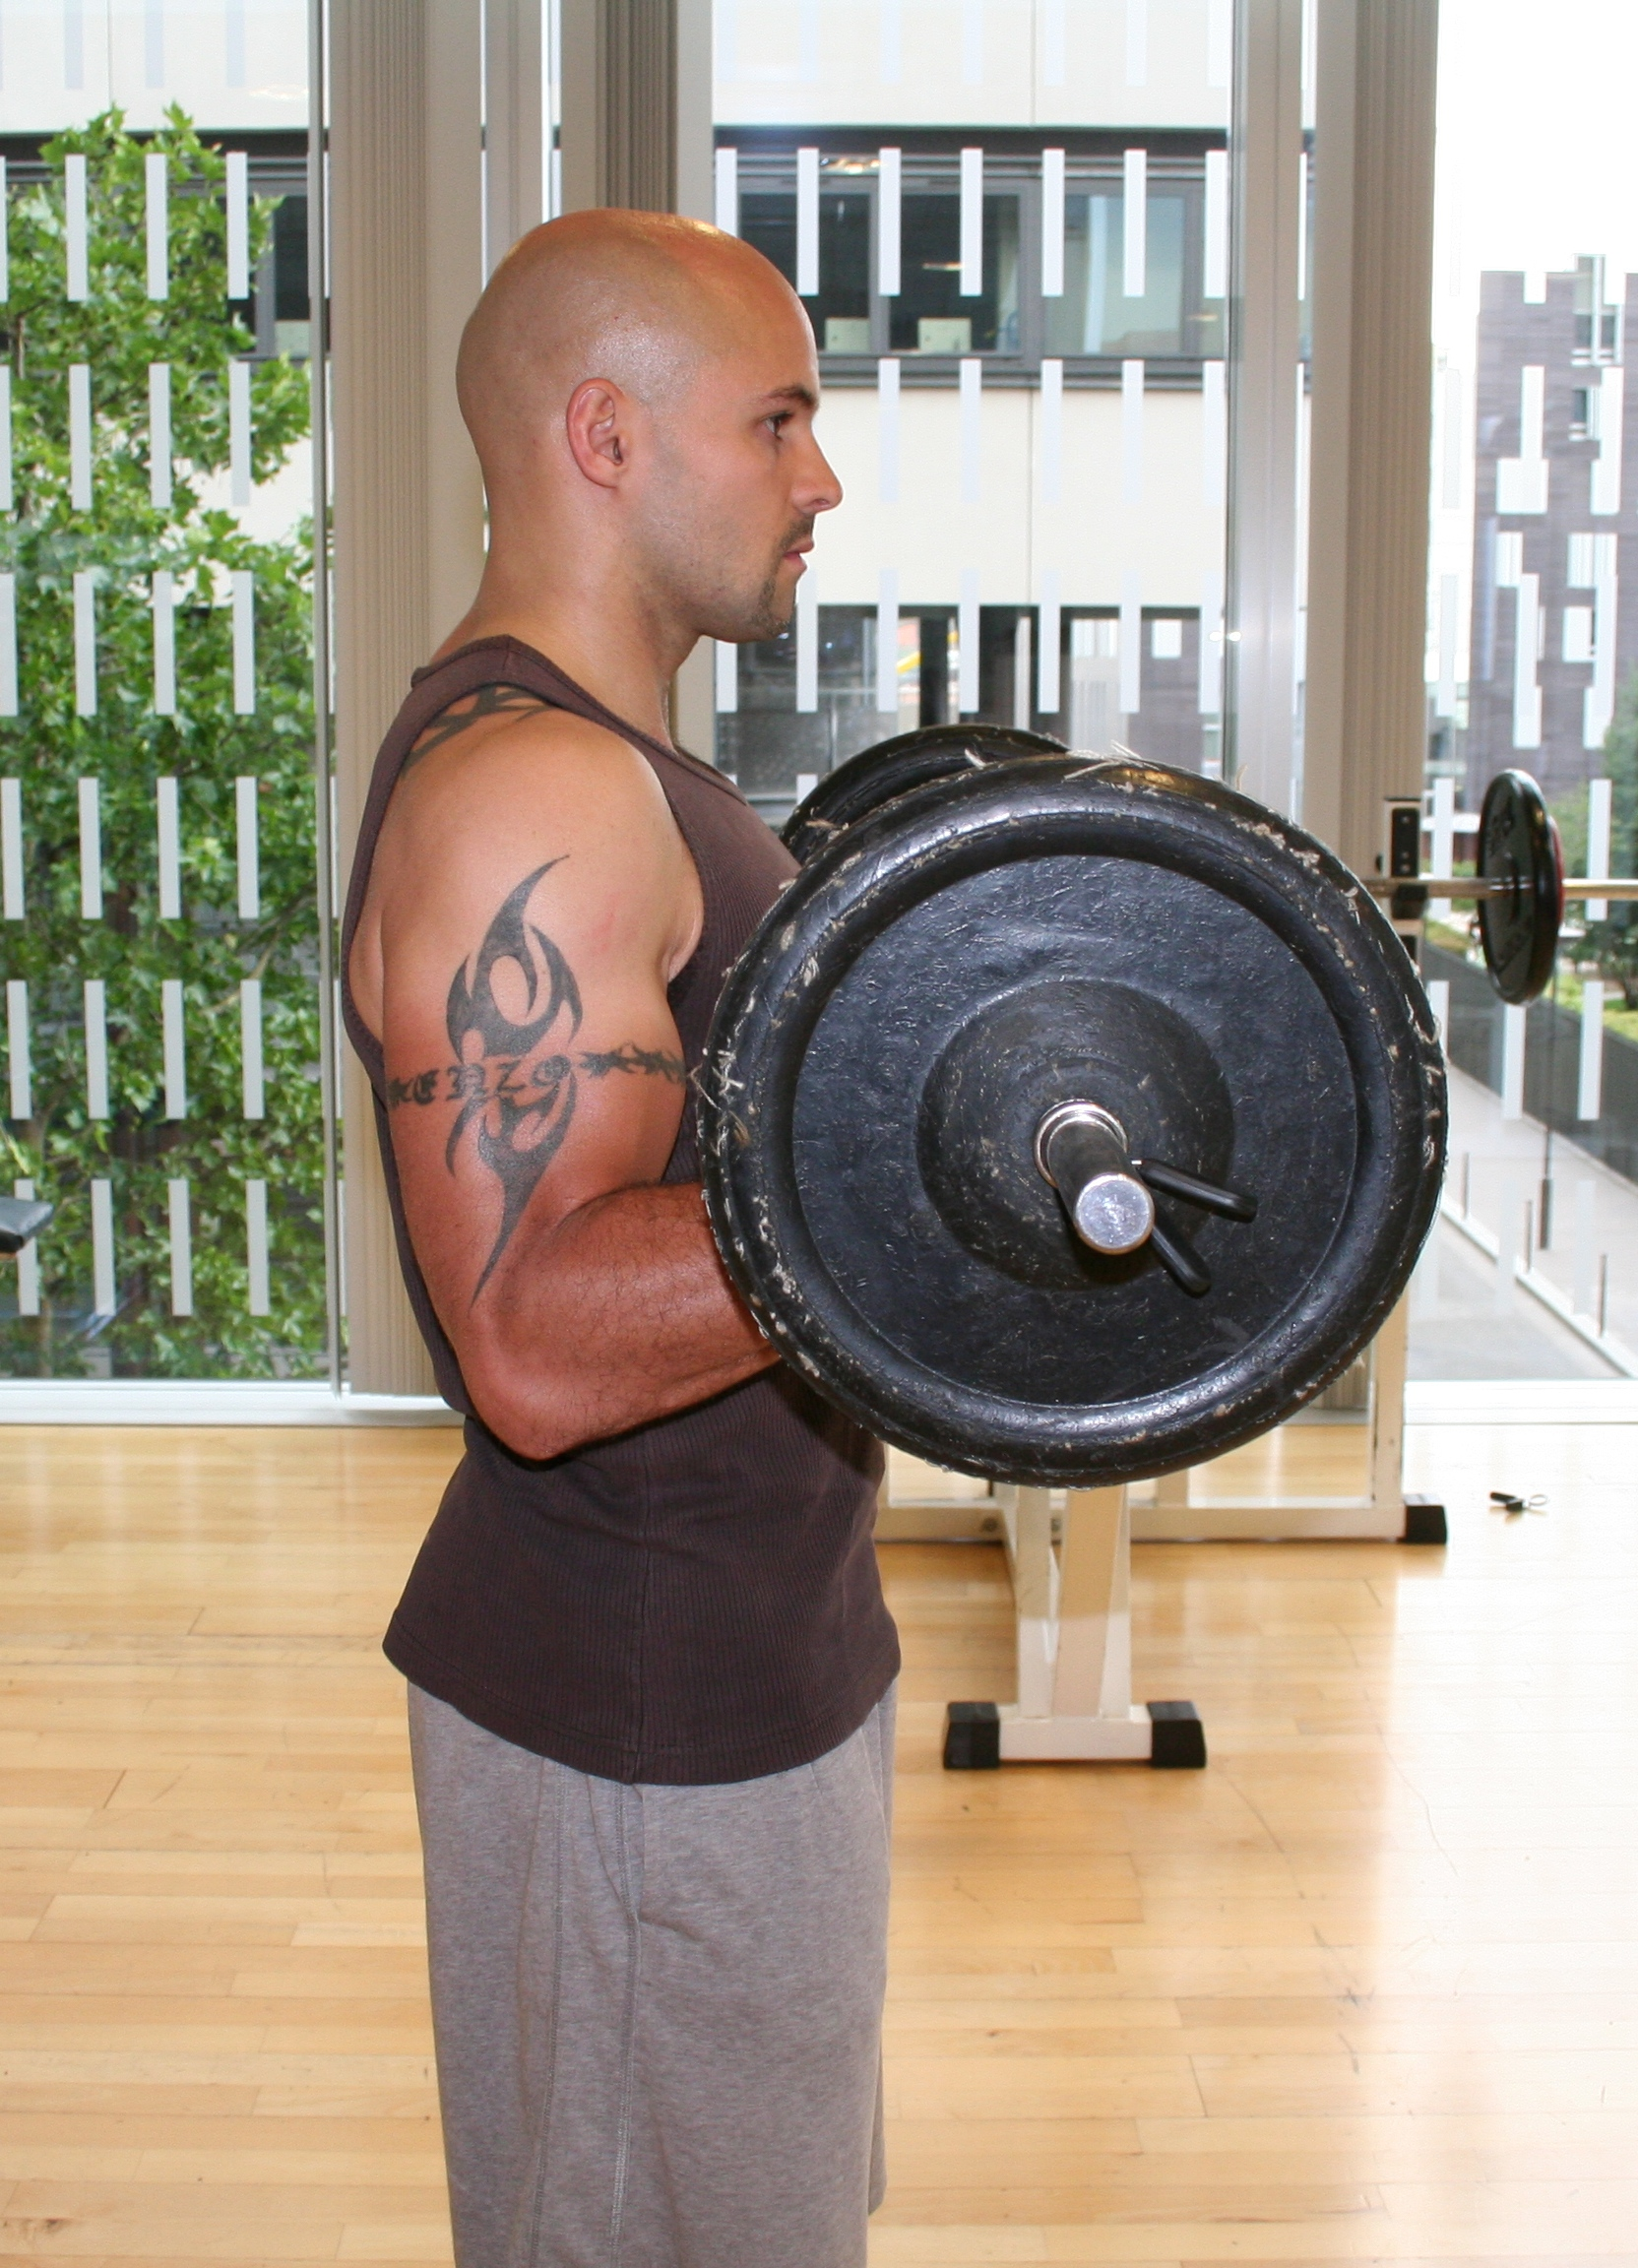 Volume musculaire